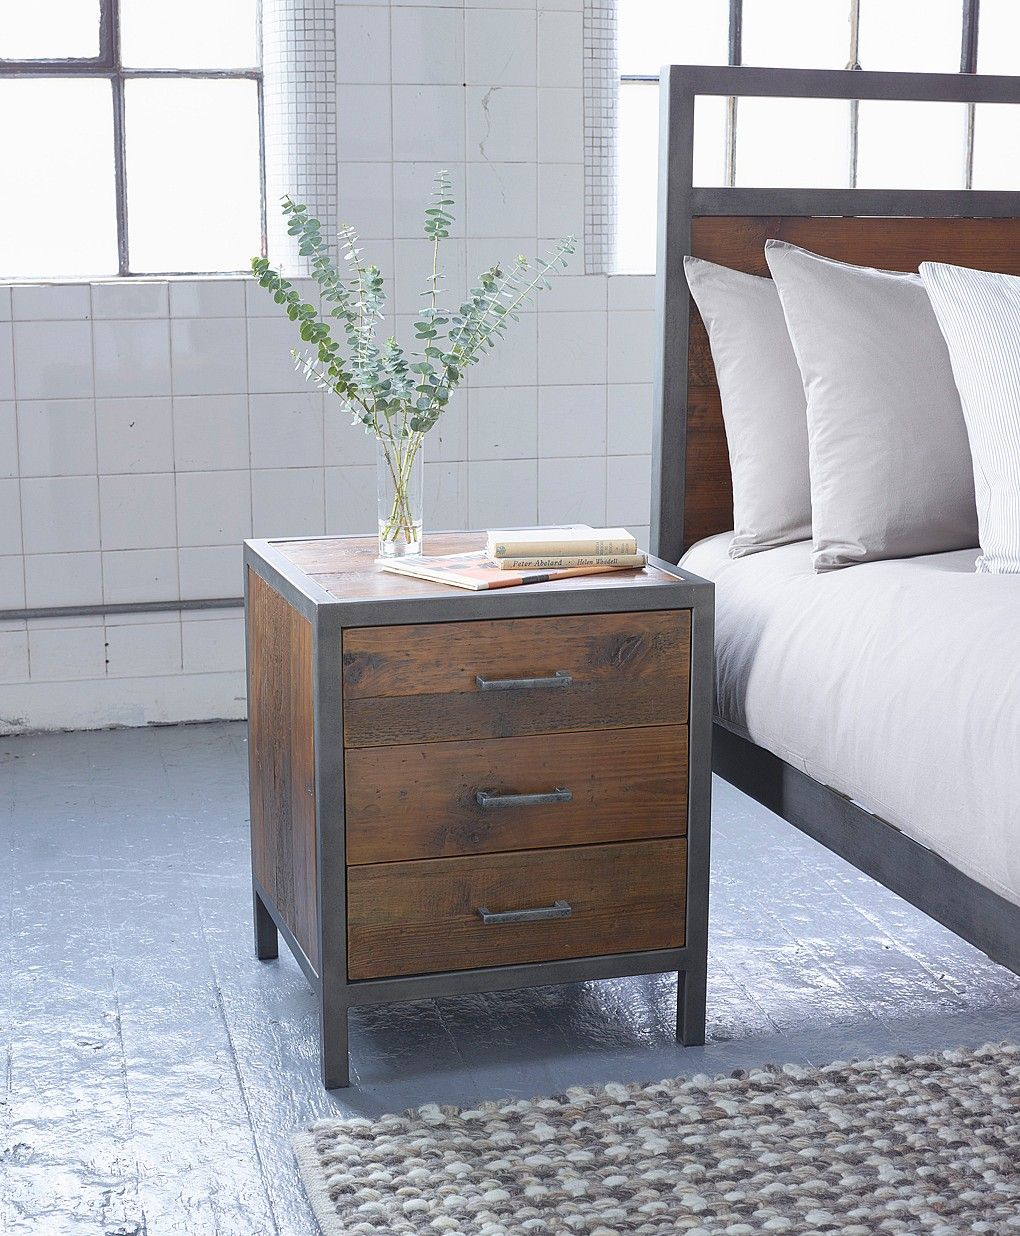 Our Versatile Baxter Bedside Table Made From Reclaimed Pine And Antiqued Metal Combines An